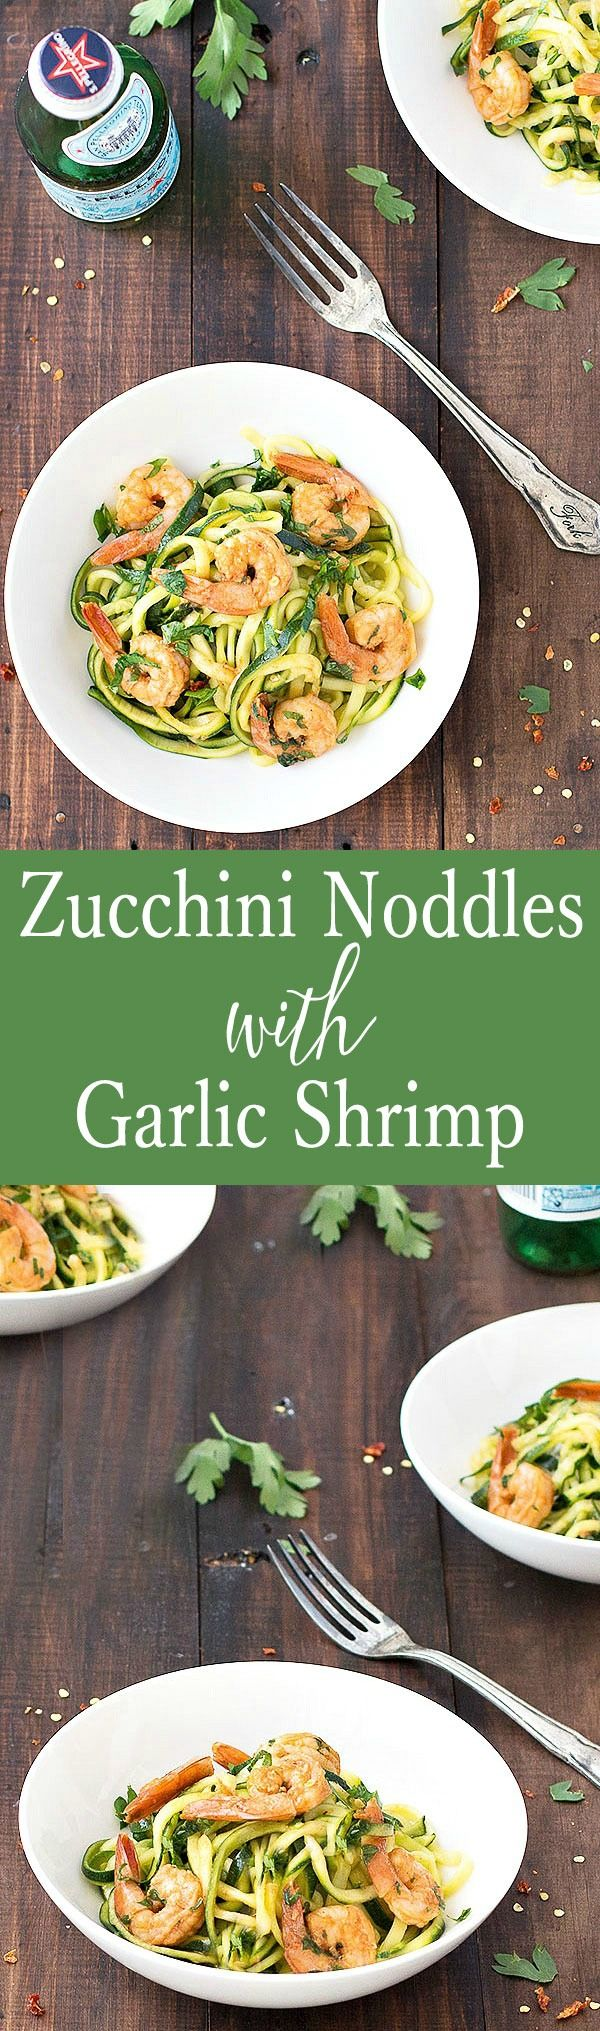 Zucchini Noodles with Garlic Shrimp #idealproteinrecipesphase1dinner